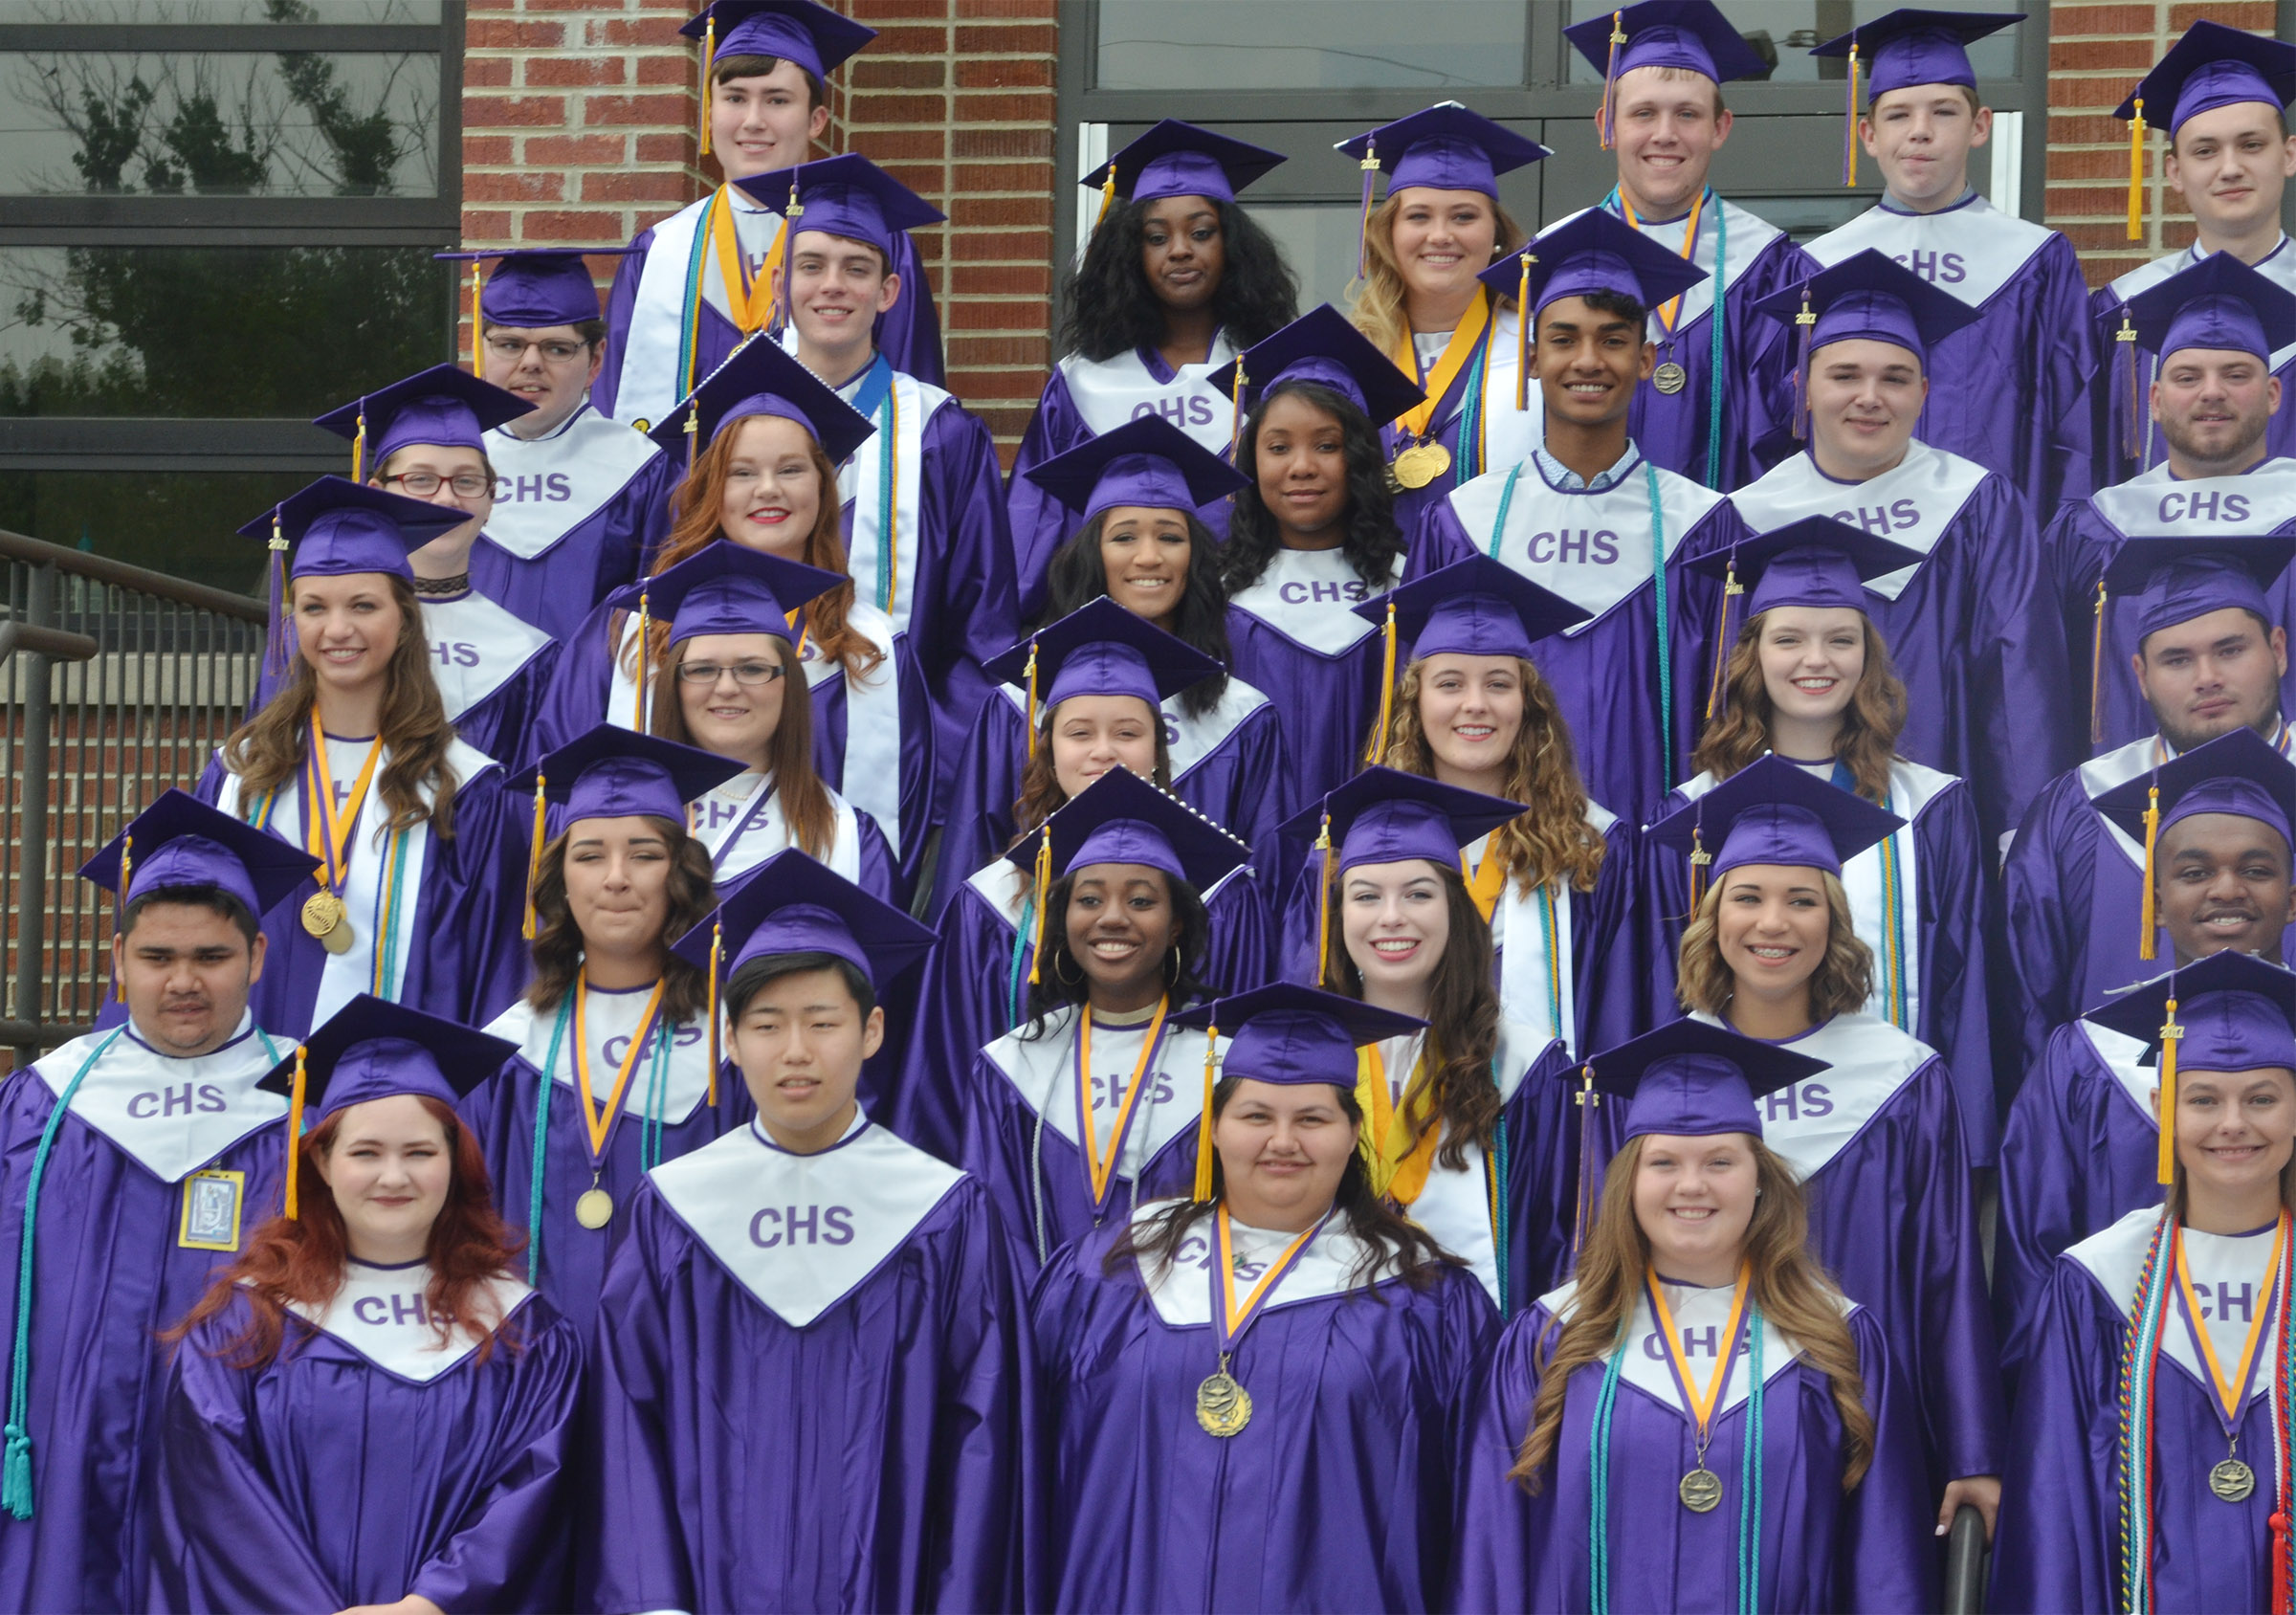 CHS seniors assemble for a group photo before graduation.